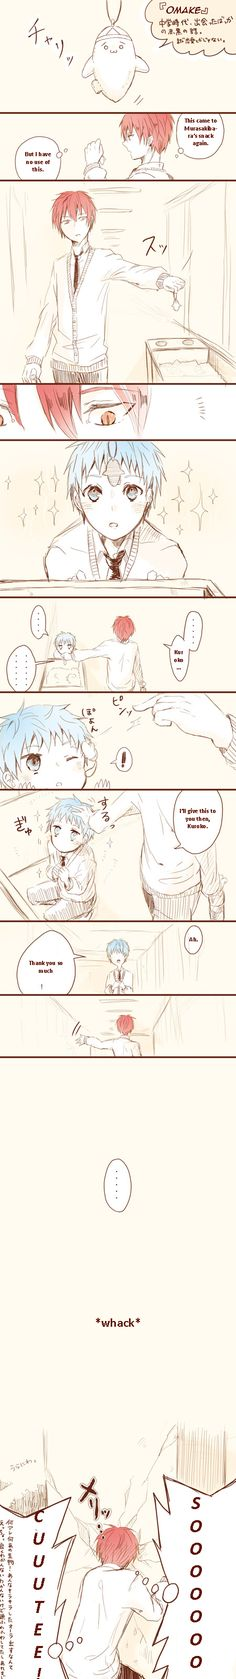 """Kuroko sure is lethally adorable here, but at the same time Akashi is almost equally cute for being so fangirly as to walking right into that wall xD"" KYAA~ Kuroko No Basket, Manga Anime, Kiseki No Sedai, Akashi Seijuro, Akakuro, Generation Of Miracles, Kuroko Tetsuya, Shall We Date, Kuroko's Basketball"